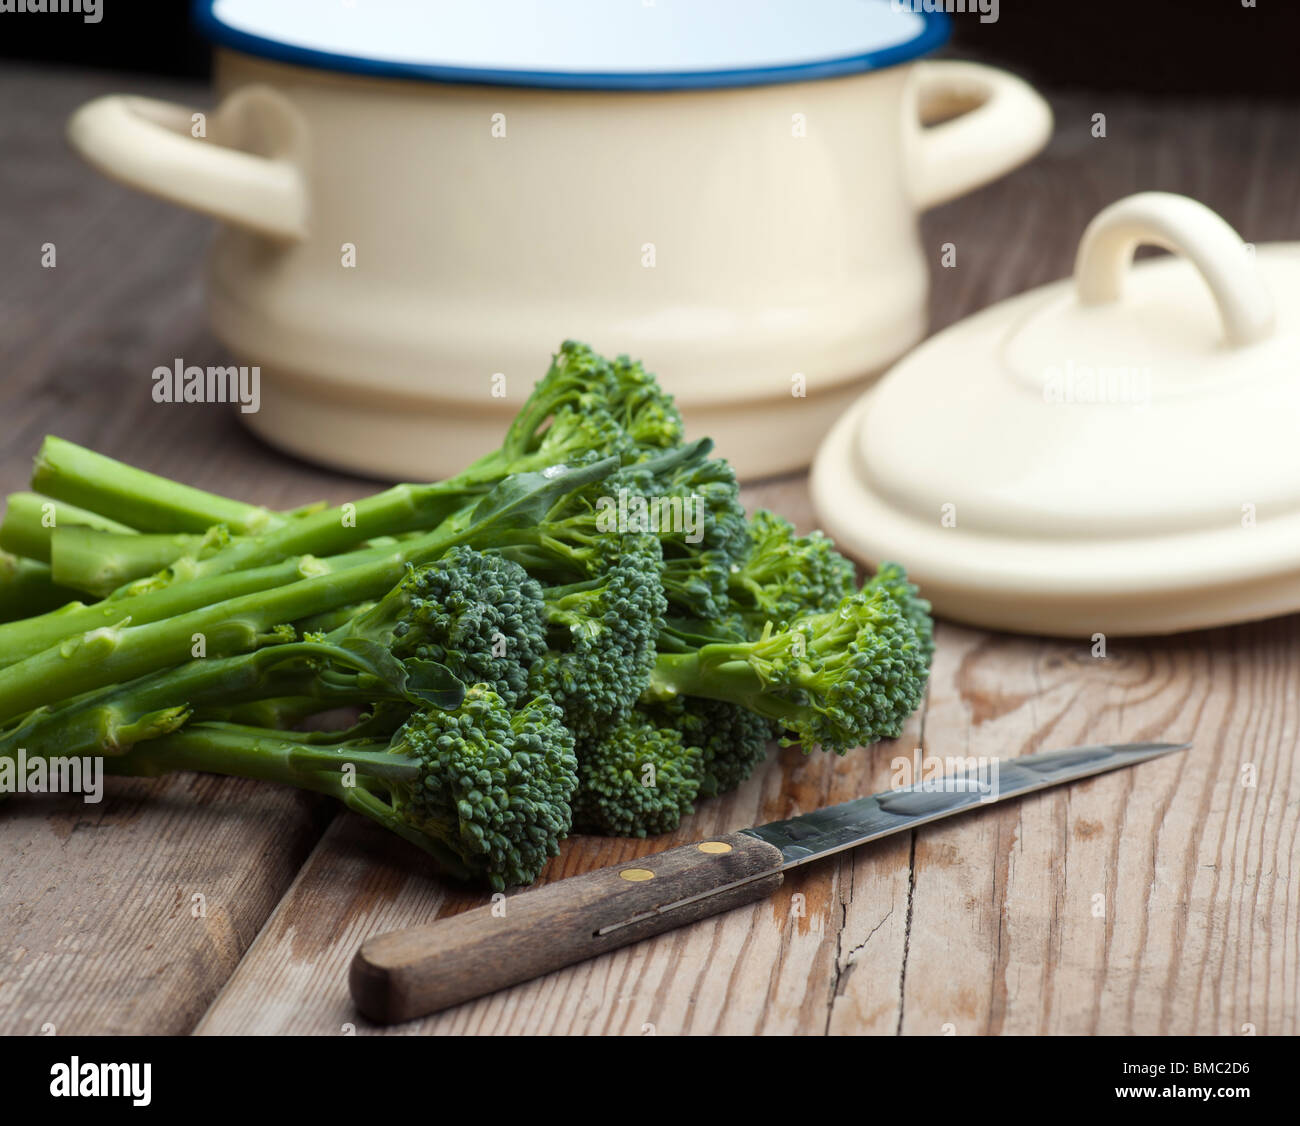 Fresh Broccoli Laid On A Wooden Kitchen Table With A Vegetable Knife and A Pan With Lid In The Background - Stock Image